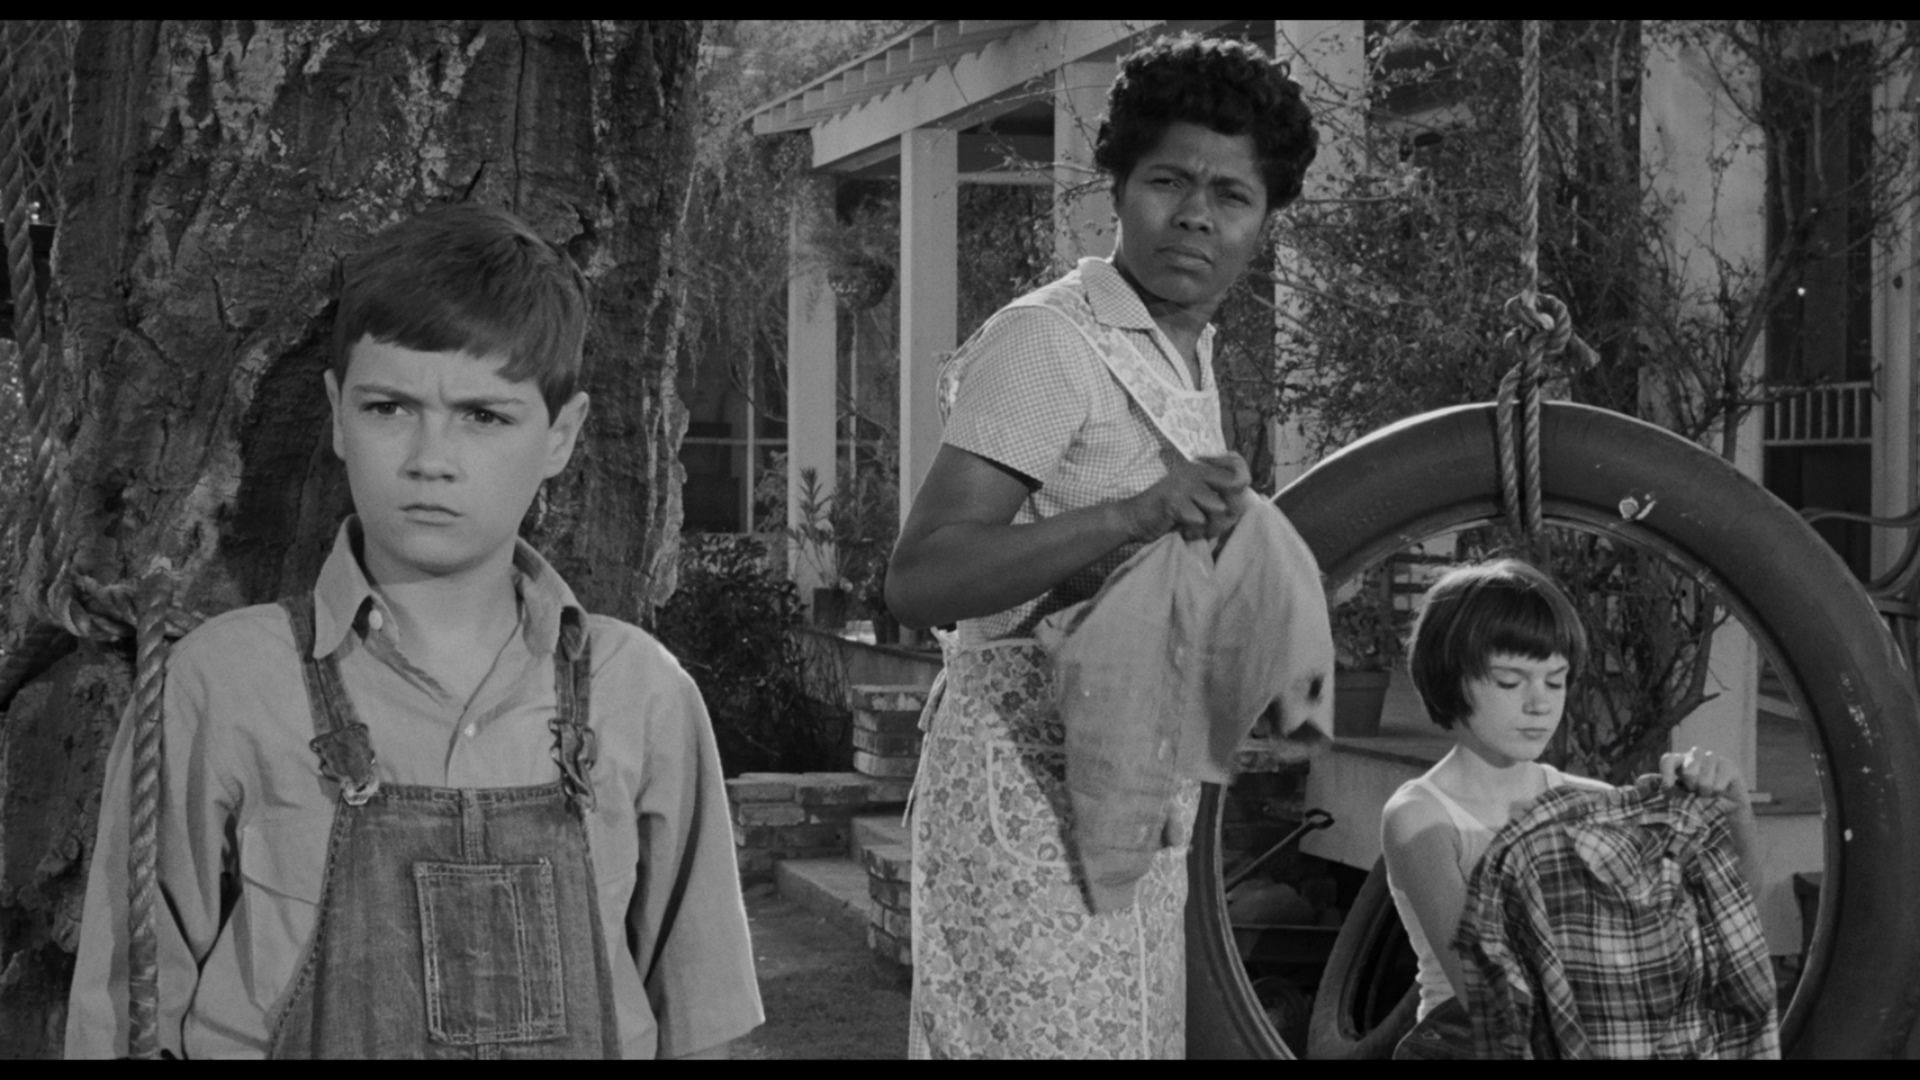 to kill a mockingbird jem and Throughout the story, jem finch's character, becomes braver and more courageous there were 4 very evident sections of the story in which jem's character participates in an act of bravery, or watches others preform a courageous act, changing the way jem views bravery 1 dill dares jem to touch the.